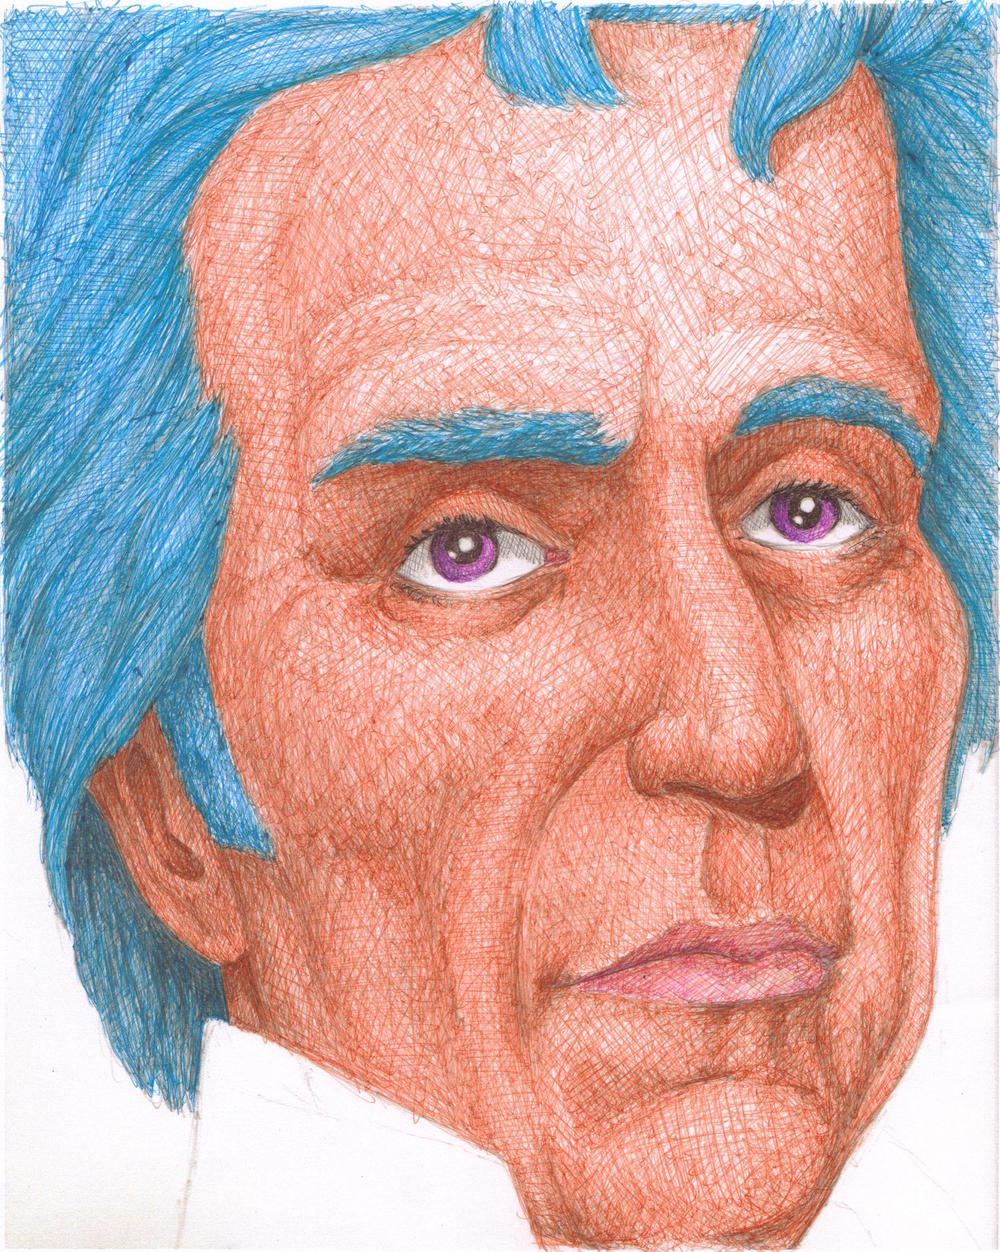 Study of Andrew Jackson   2010  Ballpoint Pen on Paper  7x9